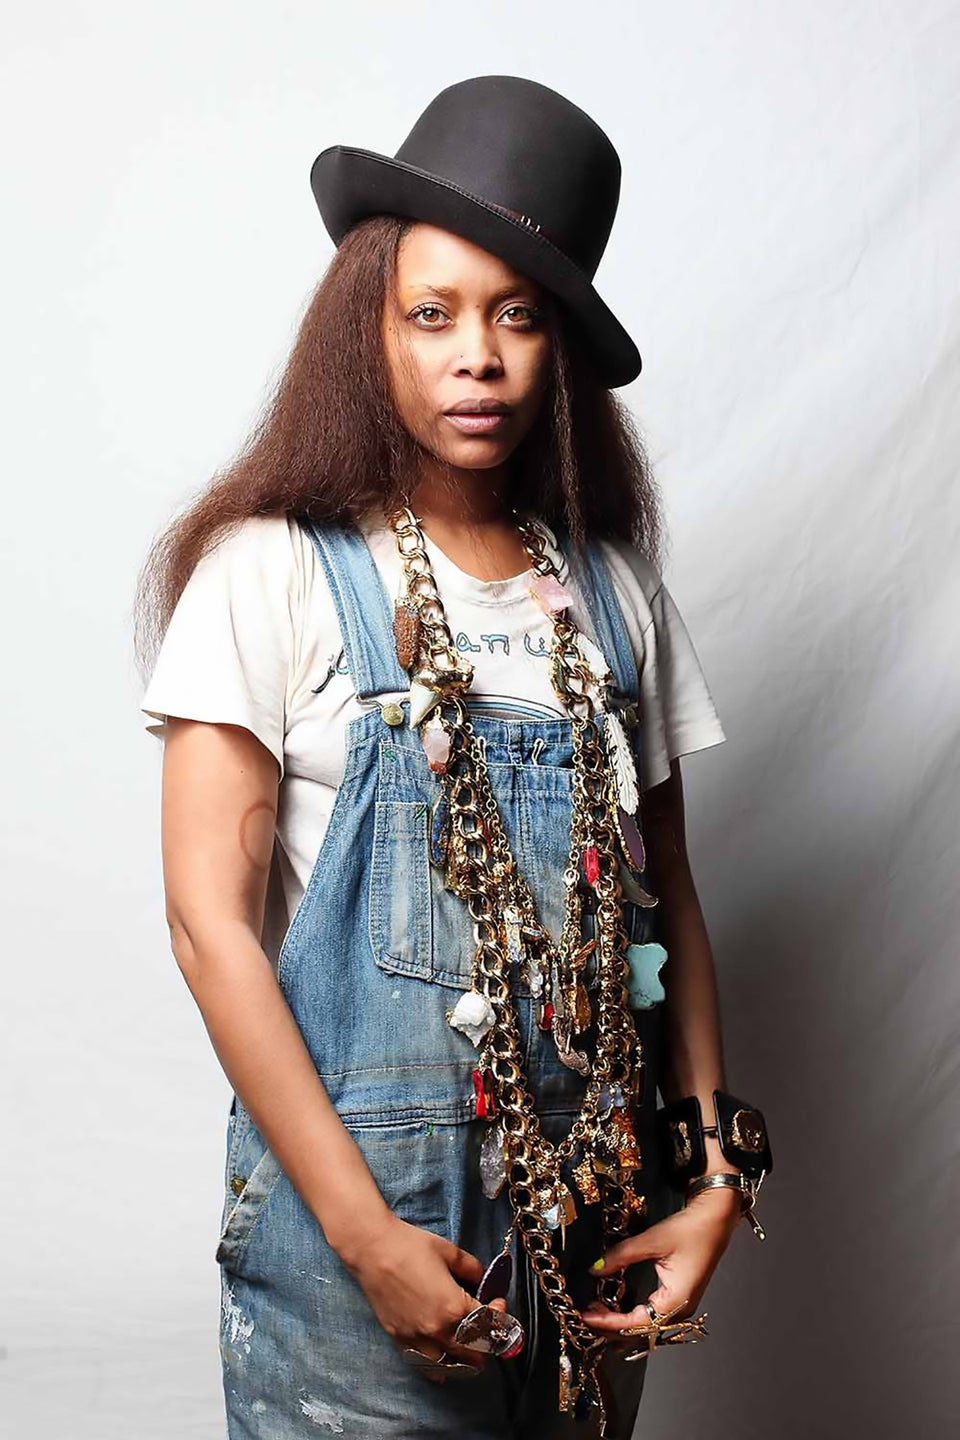 5 Life Lessons from Erykah Badu's ESSENCE Cover Story